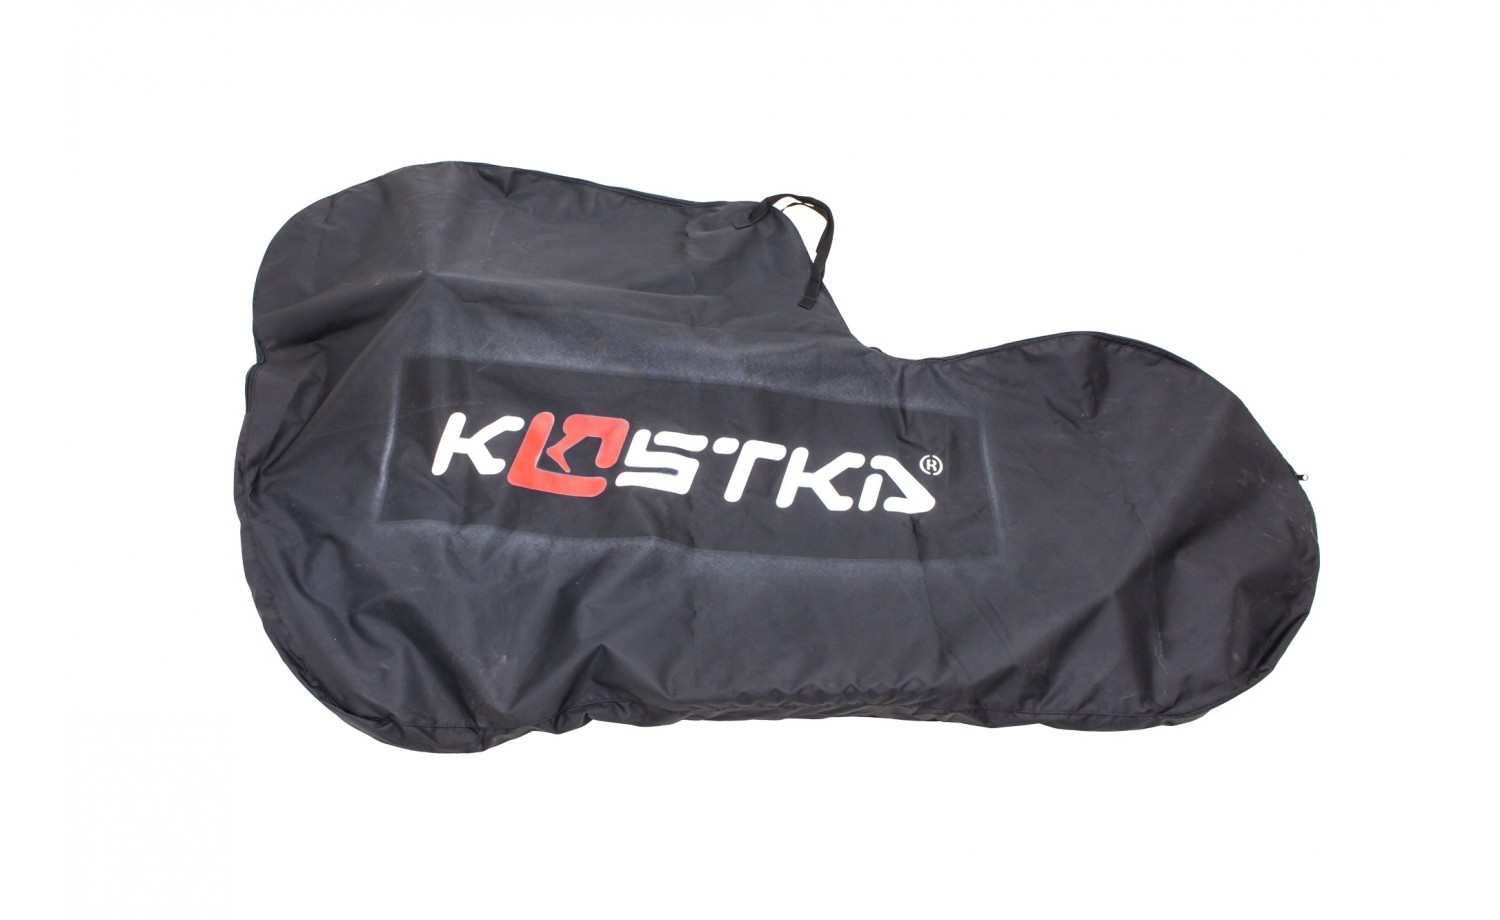 Carrying bag for the scooters KOSTKA